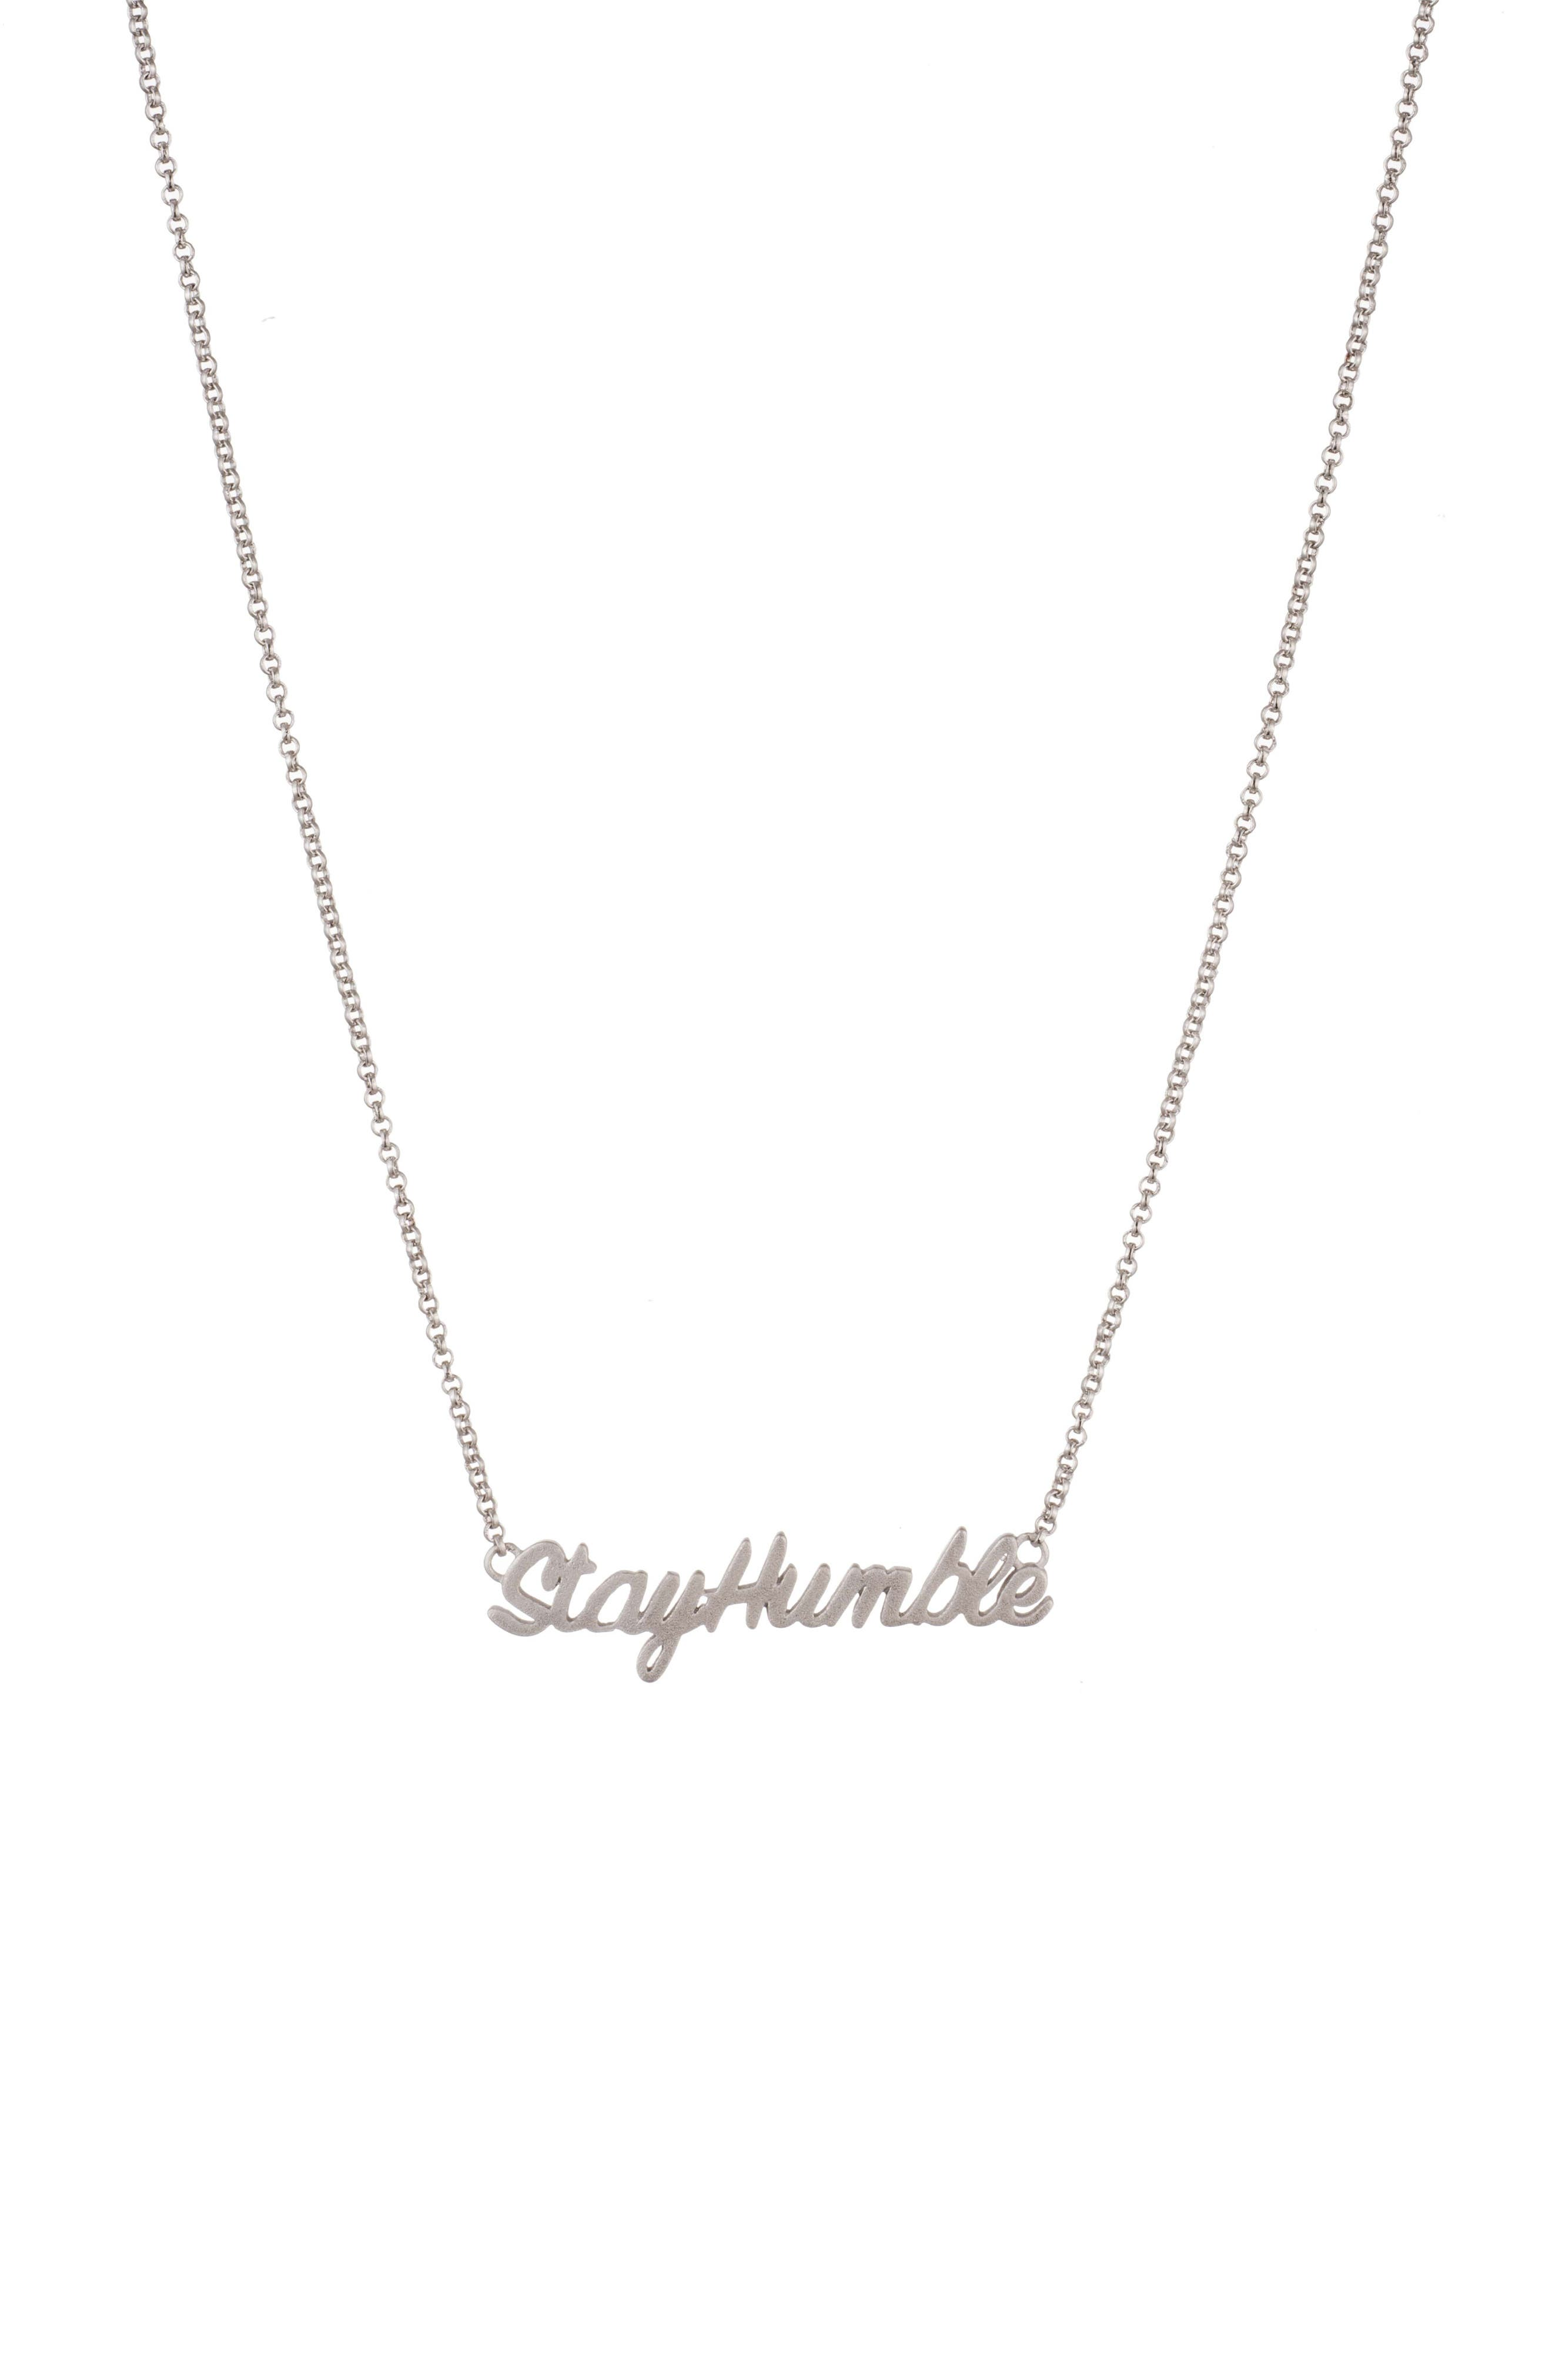 Stay Humble Necklace,                             Main thumbnail 1, color,                             040